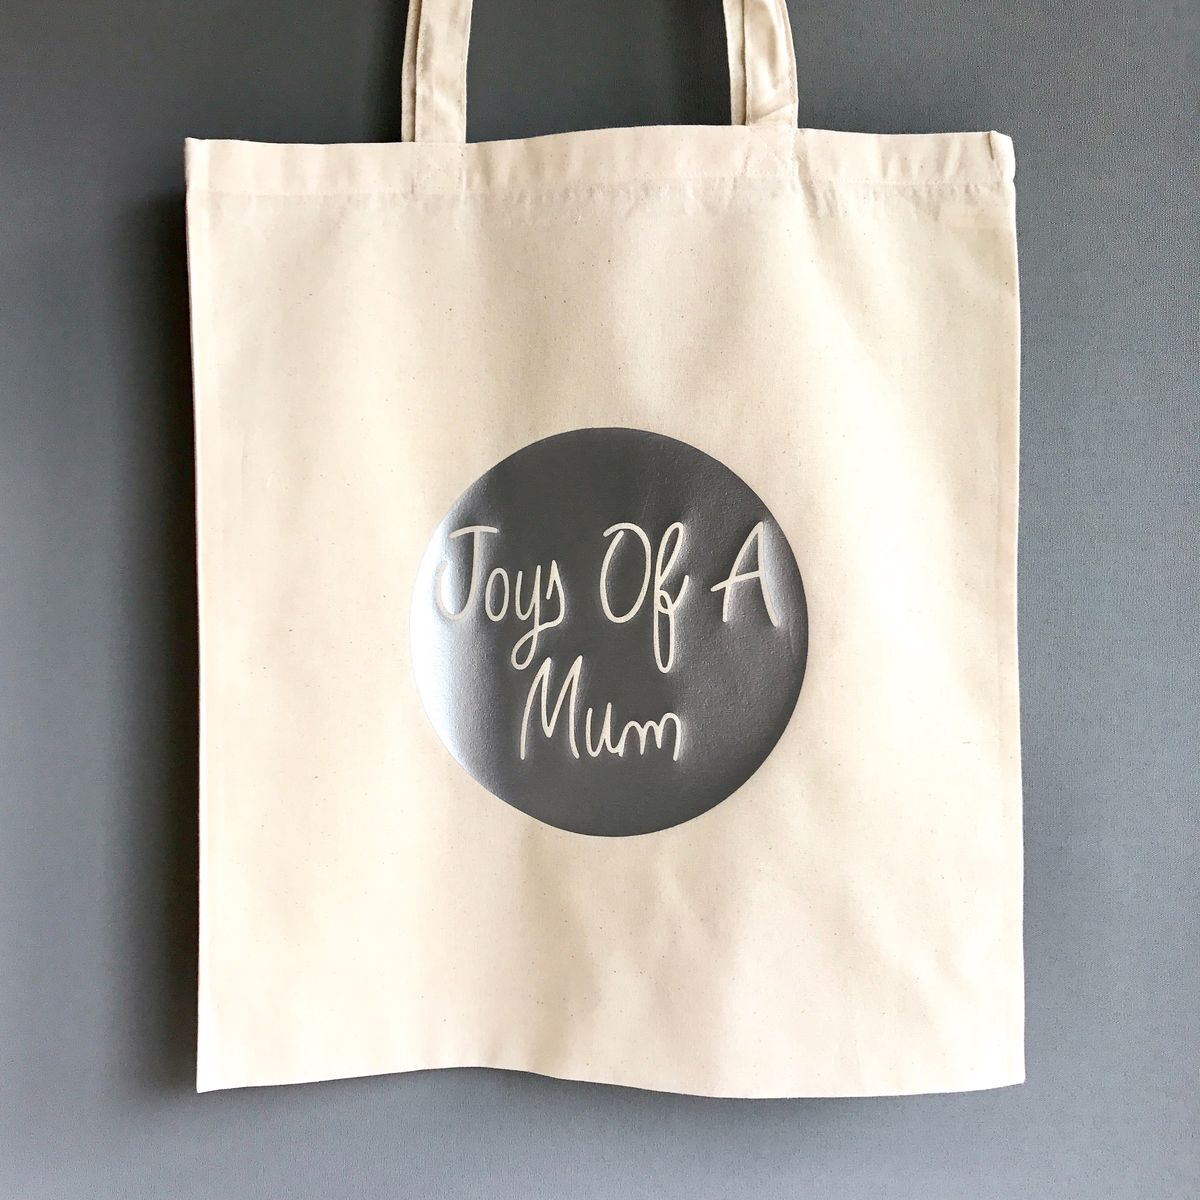 Name Gold/Silver/Black Tote Bag - product images  of